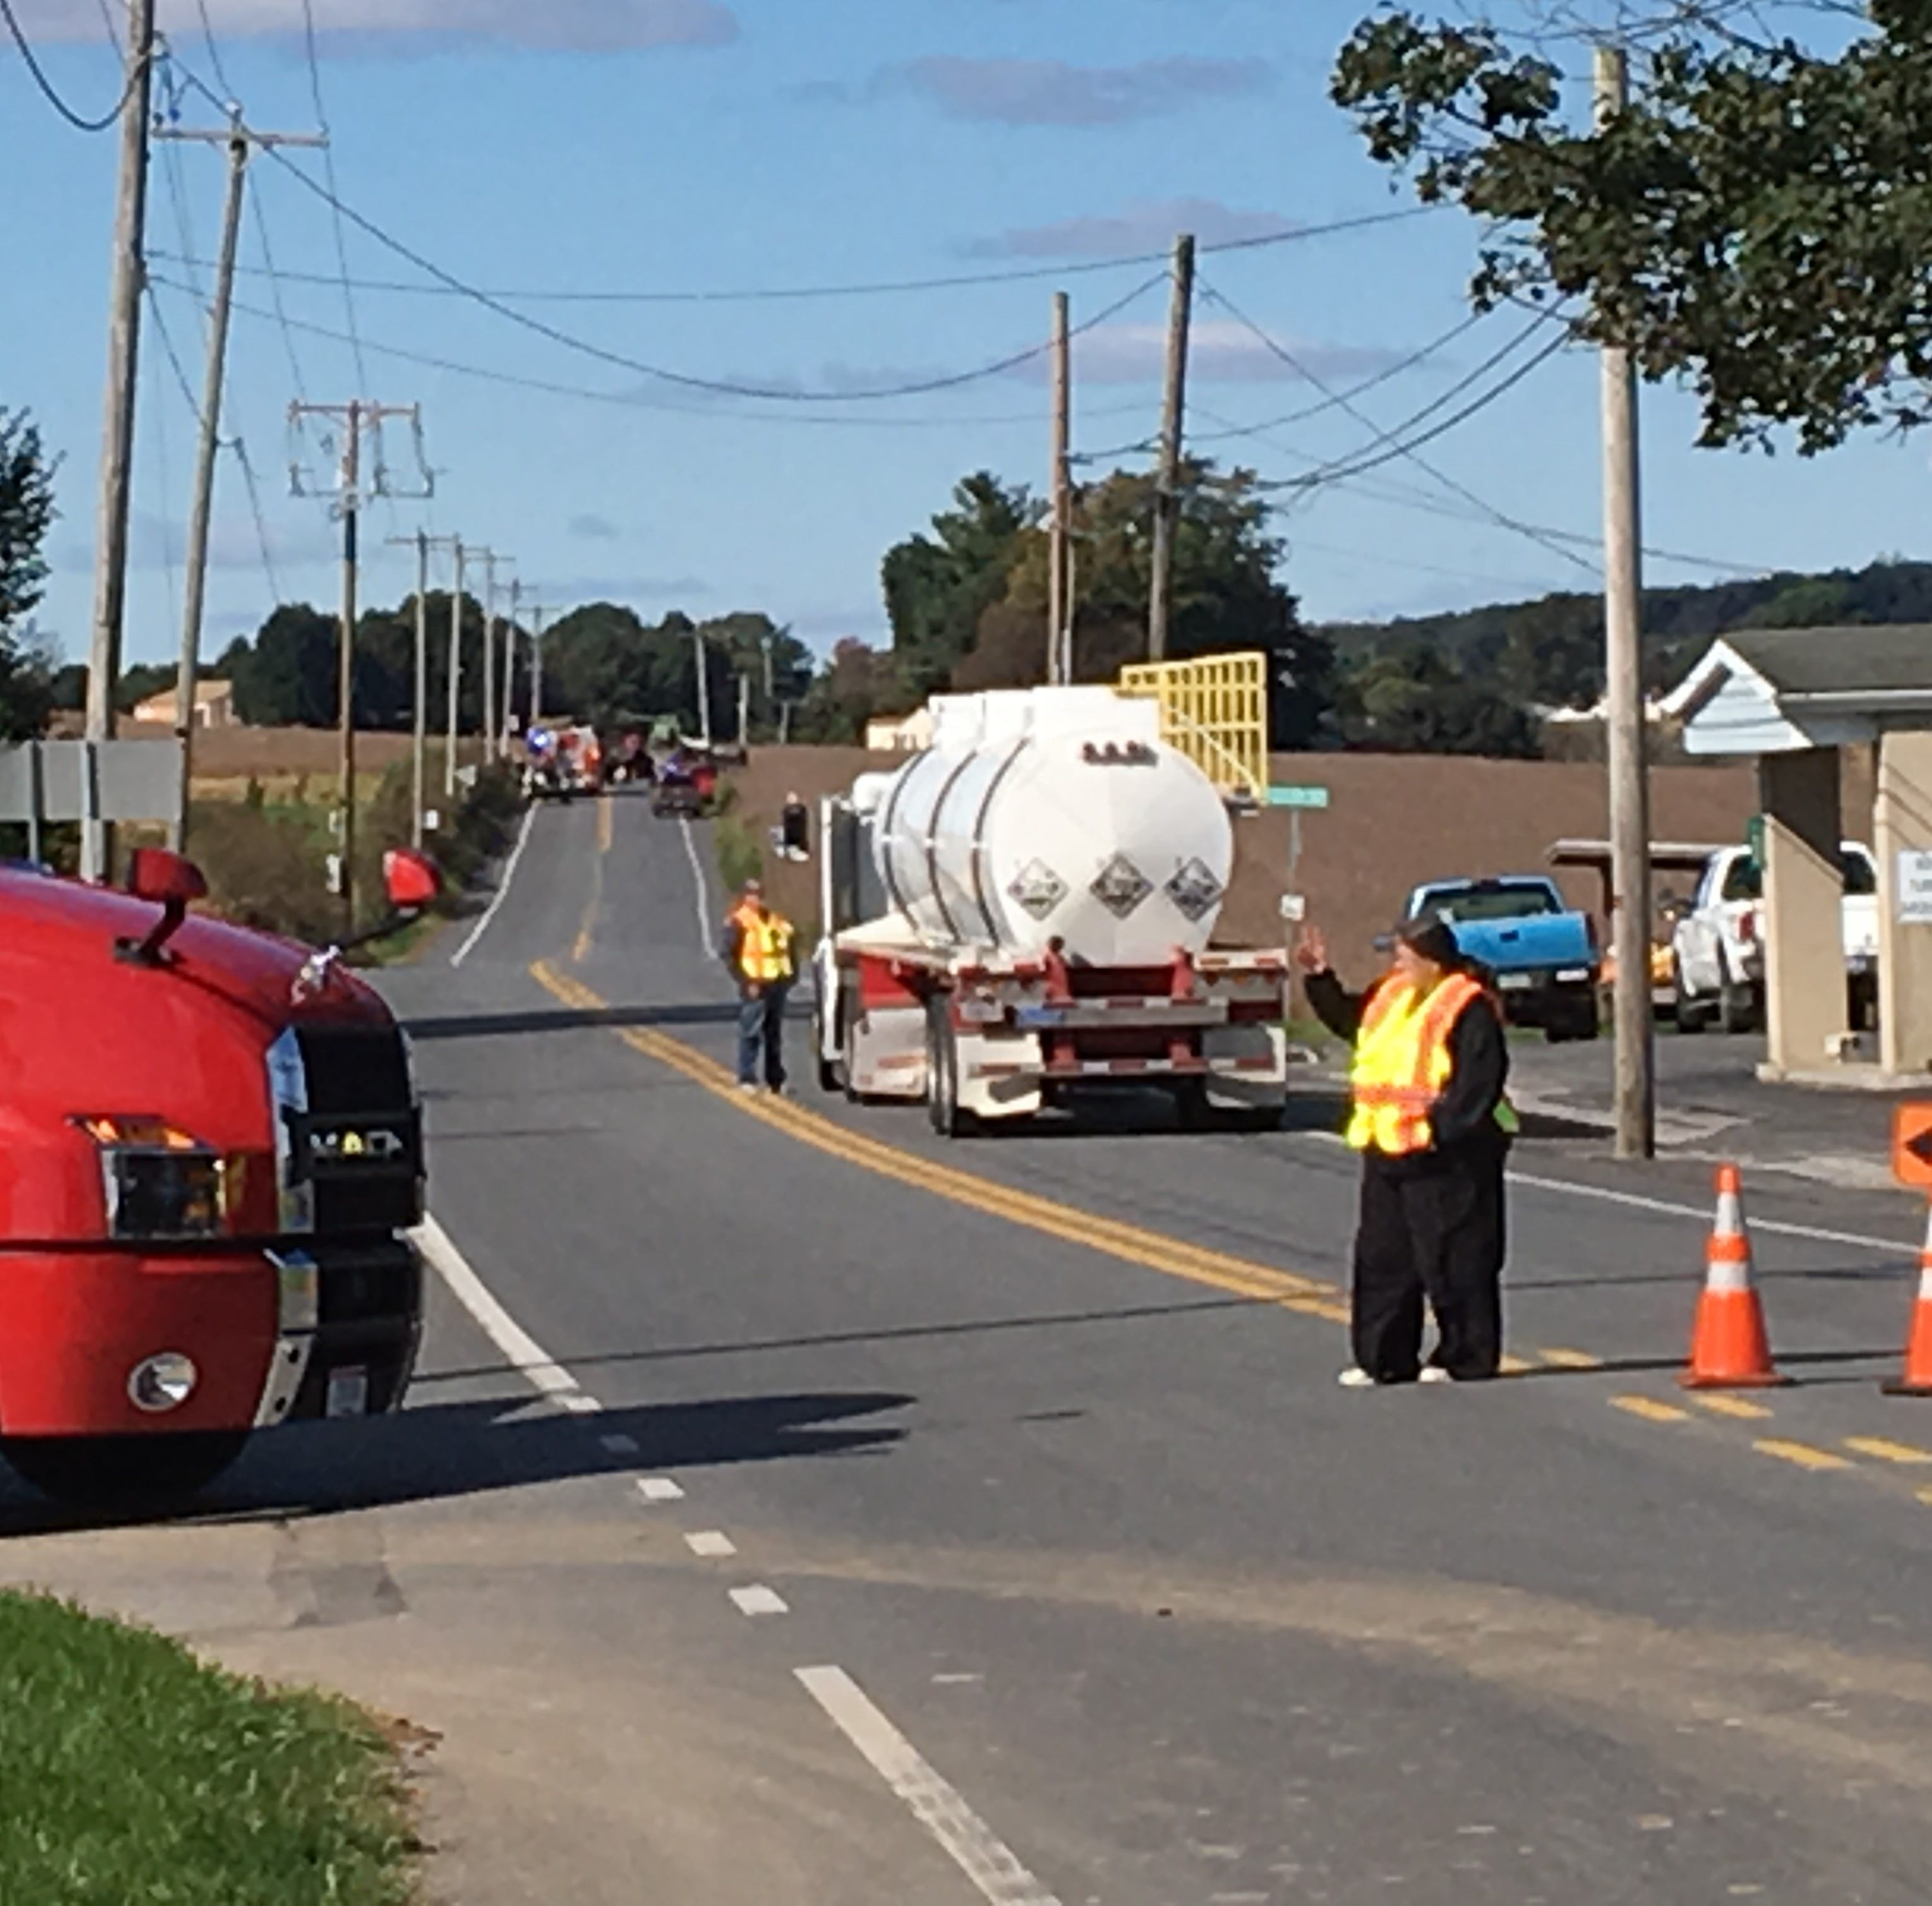 Coroner identifies woman killed in Chanceford Twp. crash